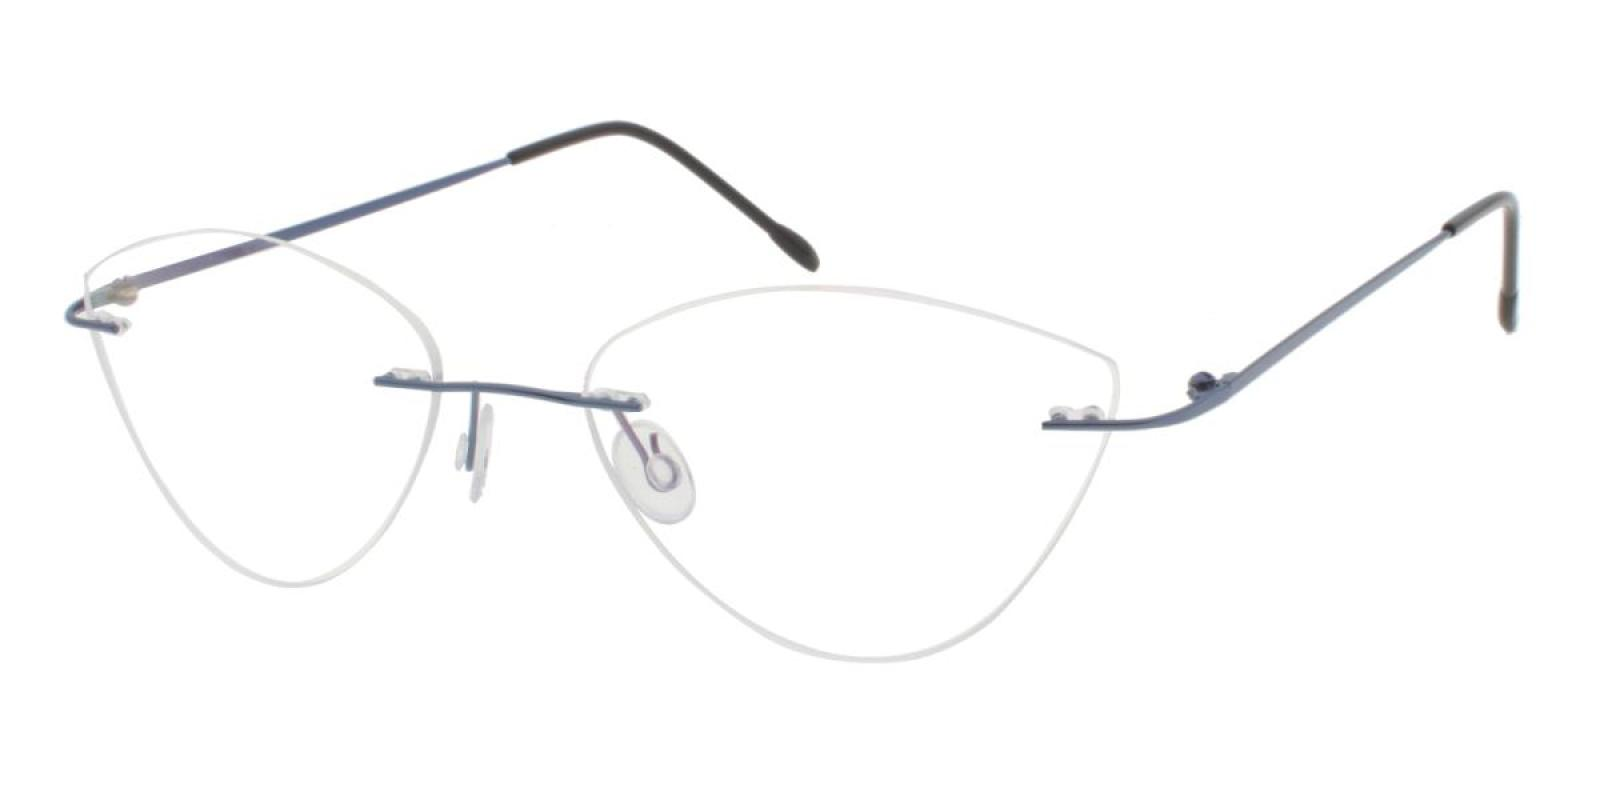 Huram-Blue-Cat / Varieties-Metal-Eyeglasses-additional1